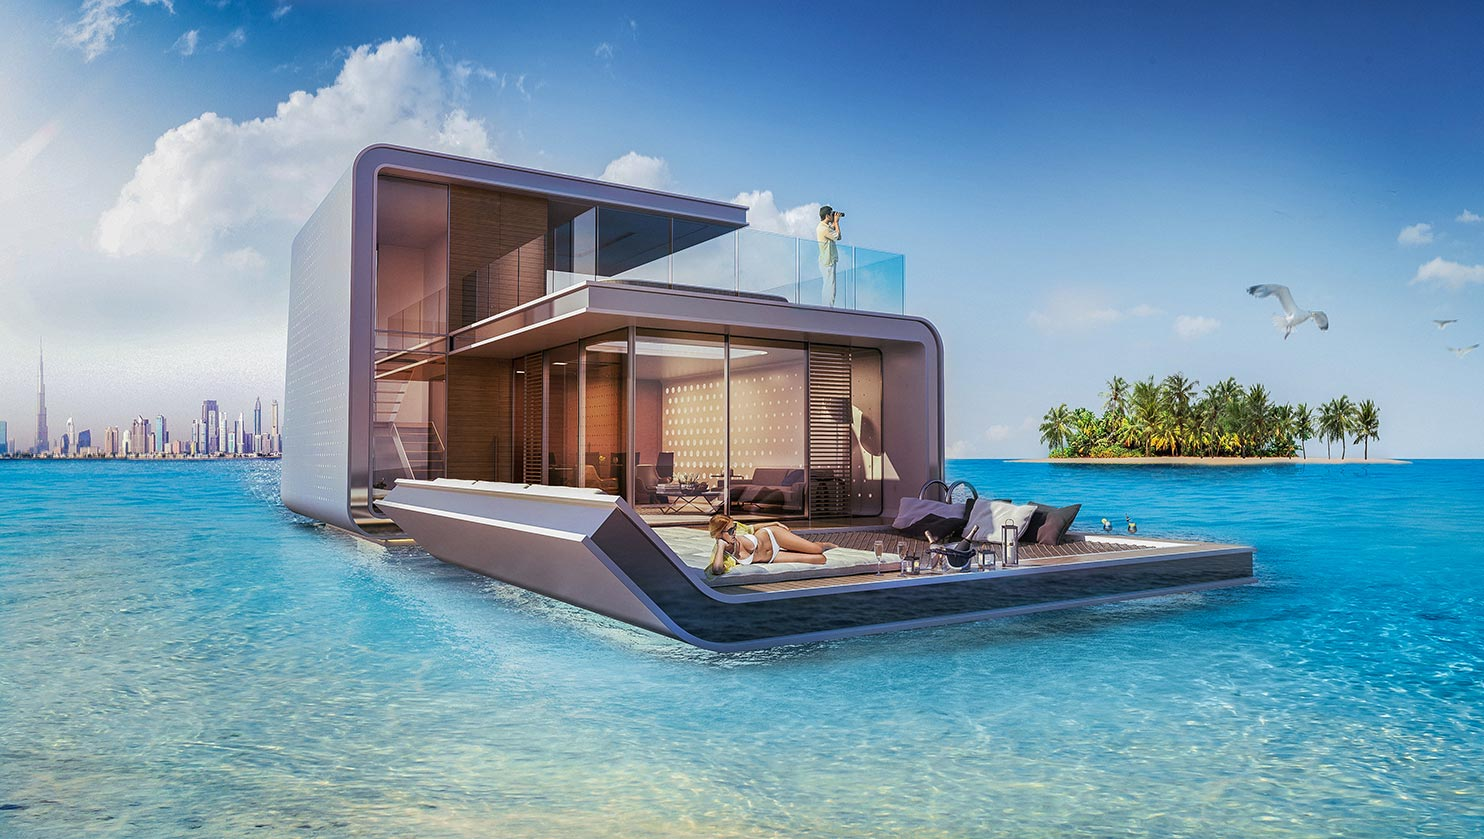 5 Unique Floating Homes For a Luxurious Lifestyle floating homes 5 Unique Floating Homes For a Luxurious Lifestyle 5 Unique Floating Homes For a Luxurious Lifestyle